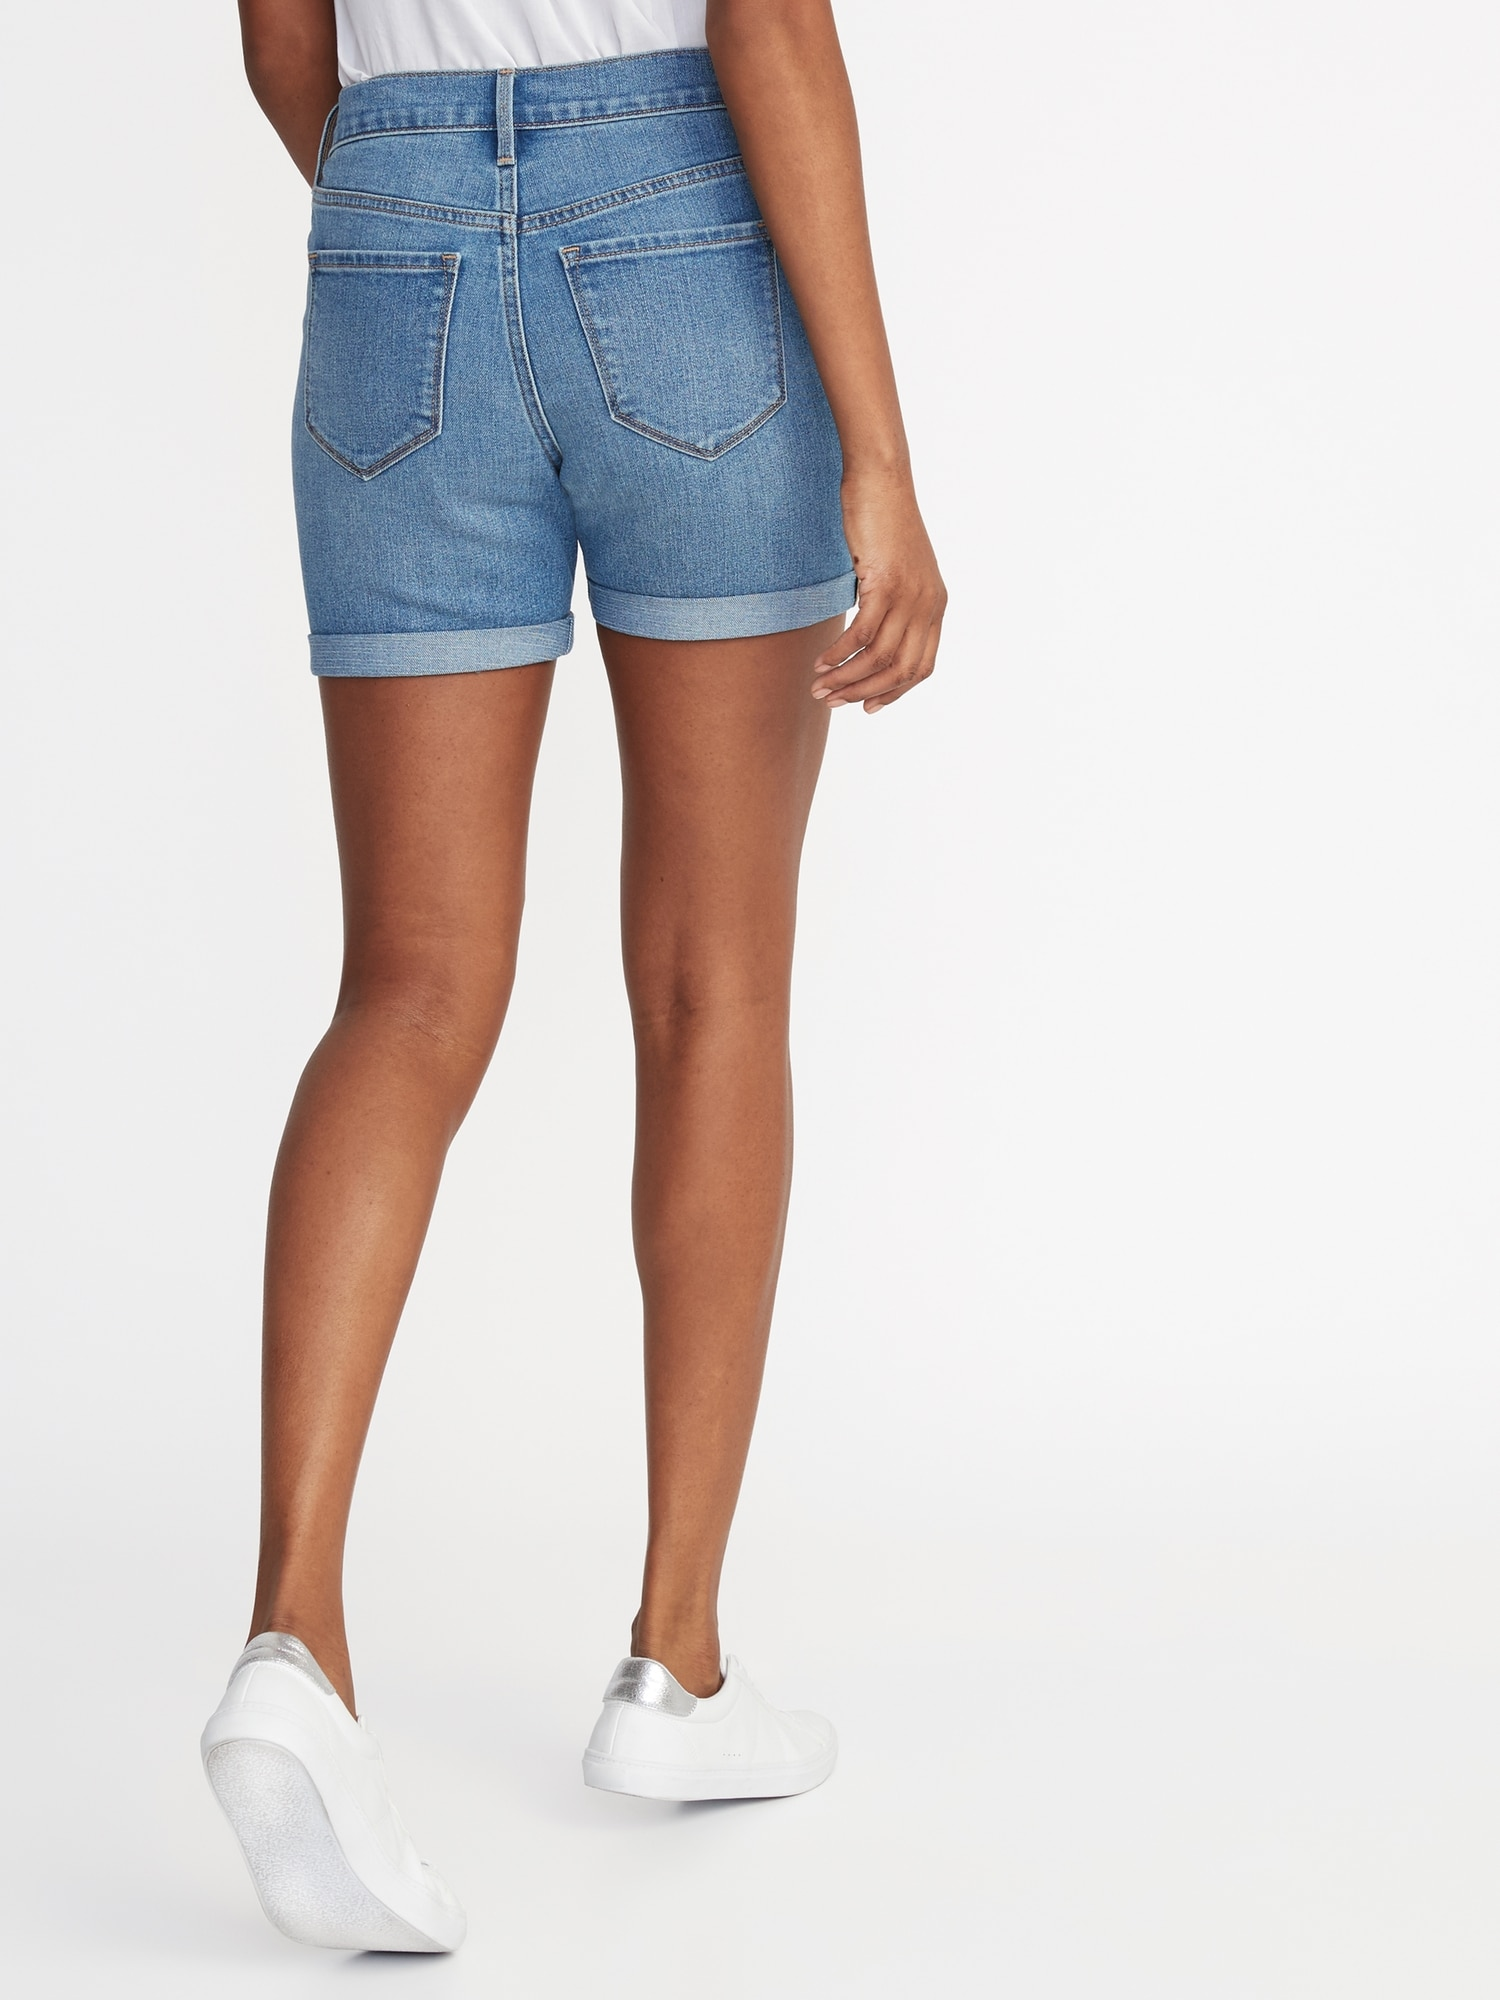 04a257766e Mid-Rise Denim Shorts for Women -- 5-inch inseam   Old Navy